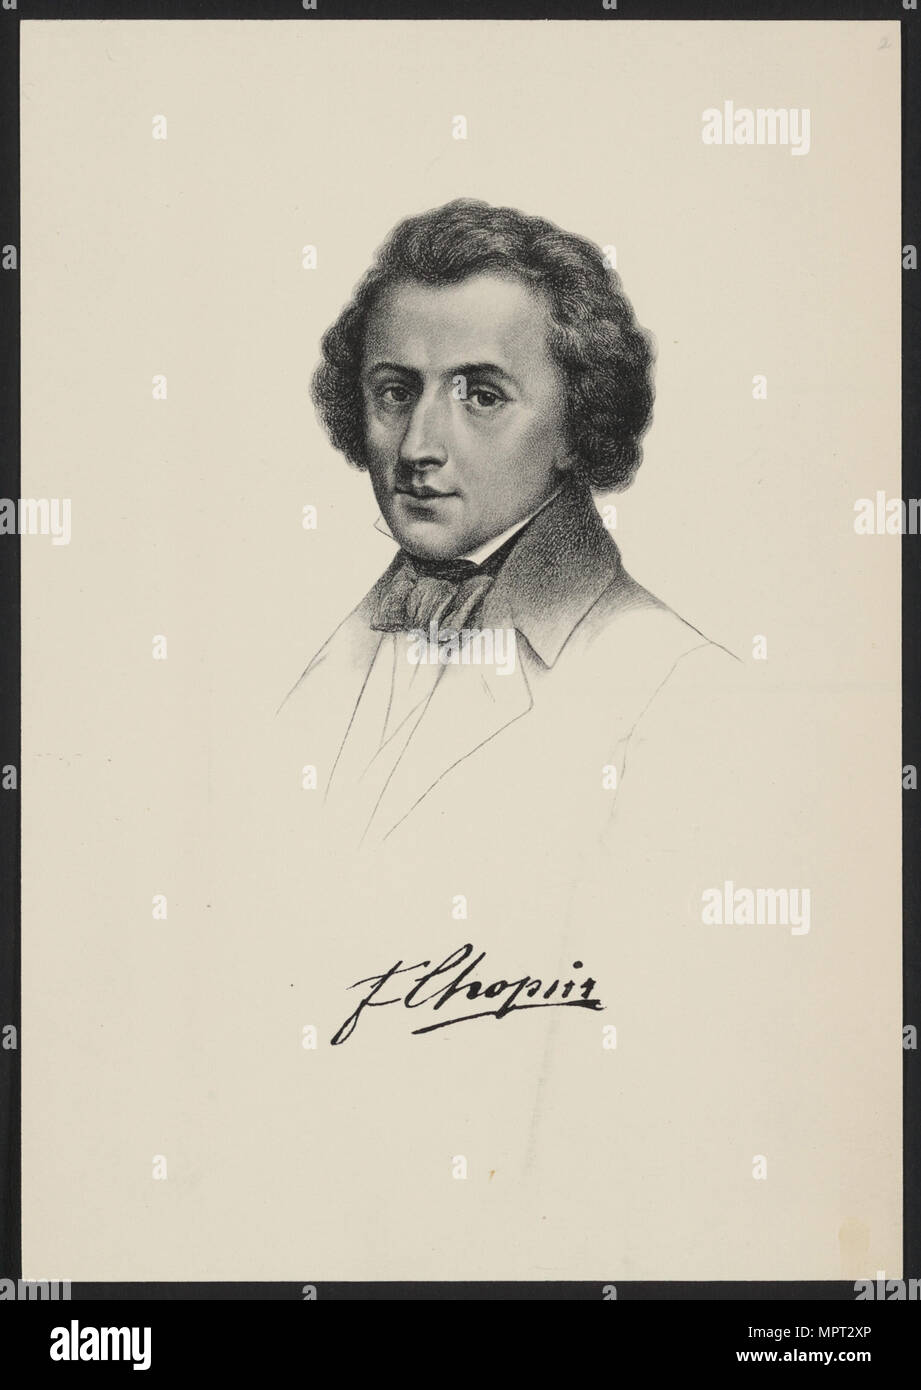 Portrait of Frédéric Chopin (1810-1849). - Stock Image